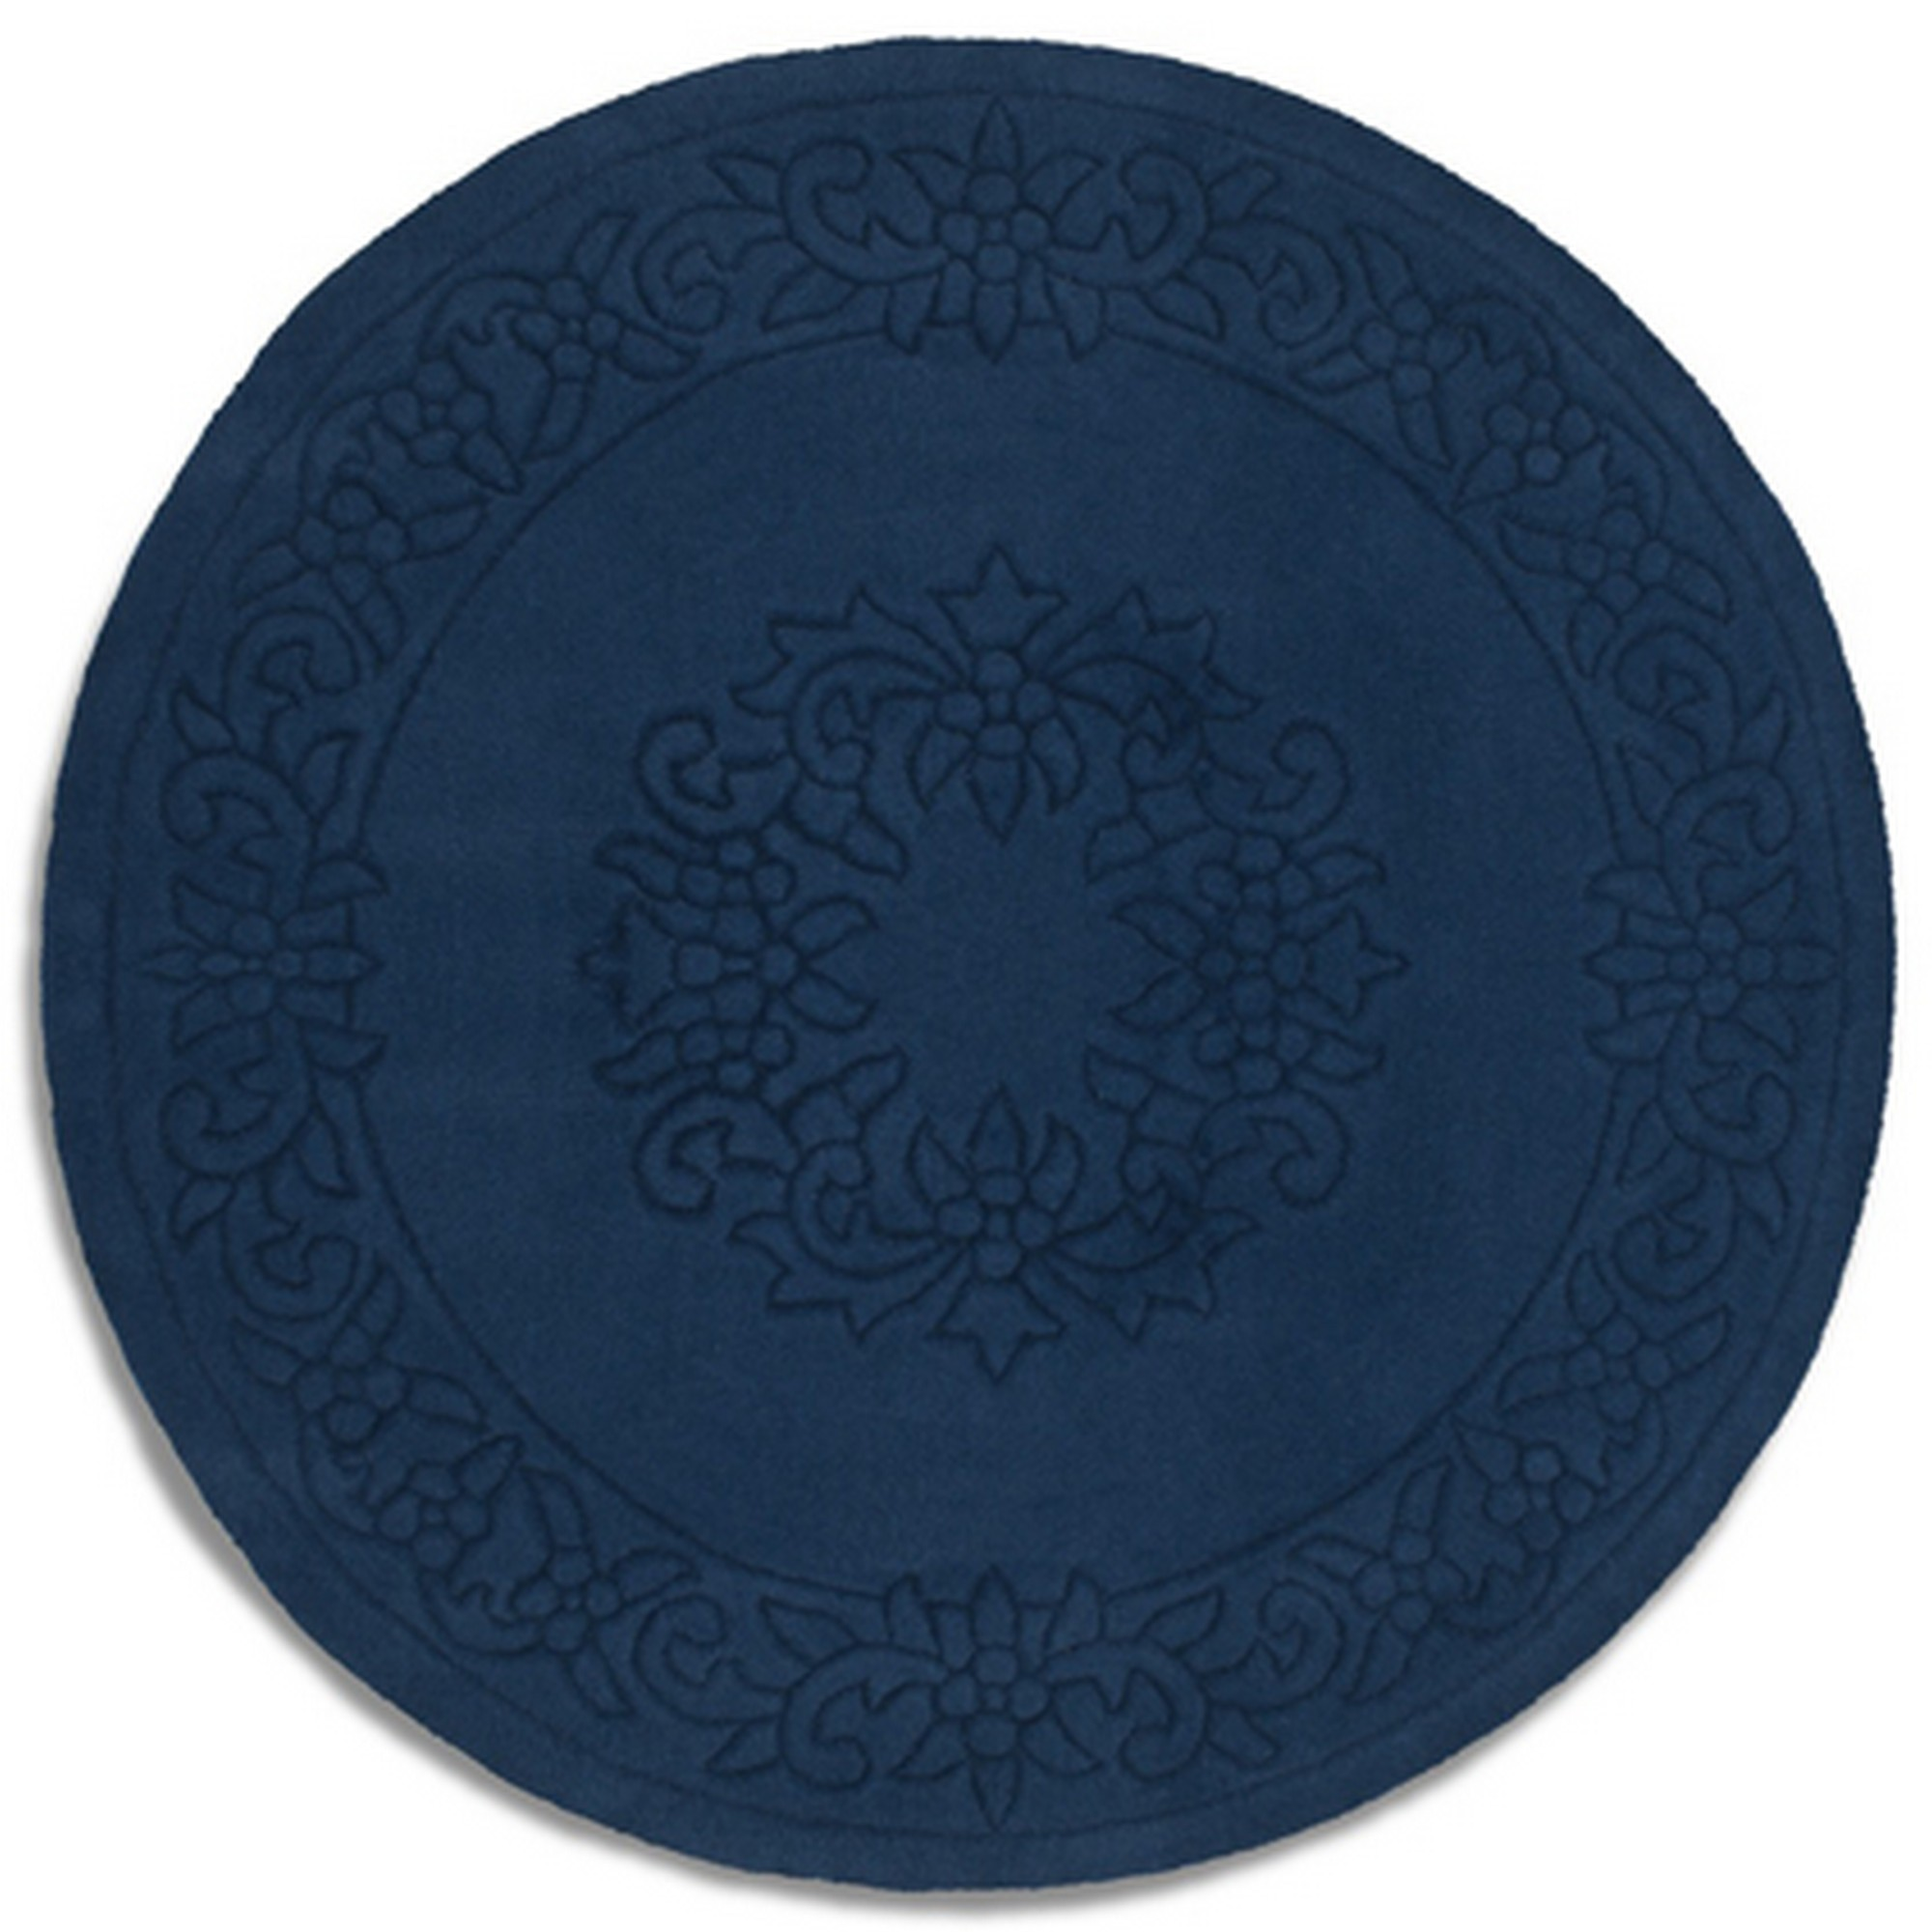 Royale Circular Rugs - Traditional Indian Wool in Blue